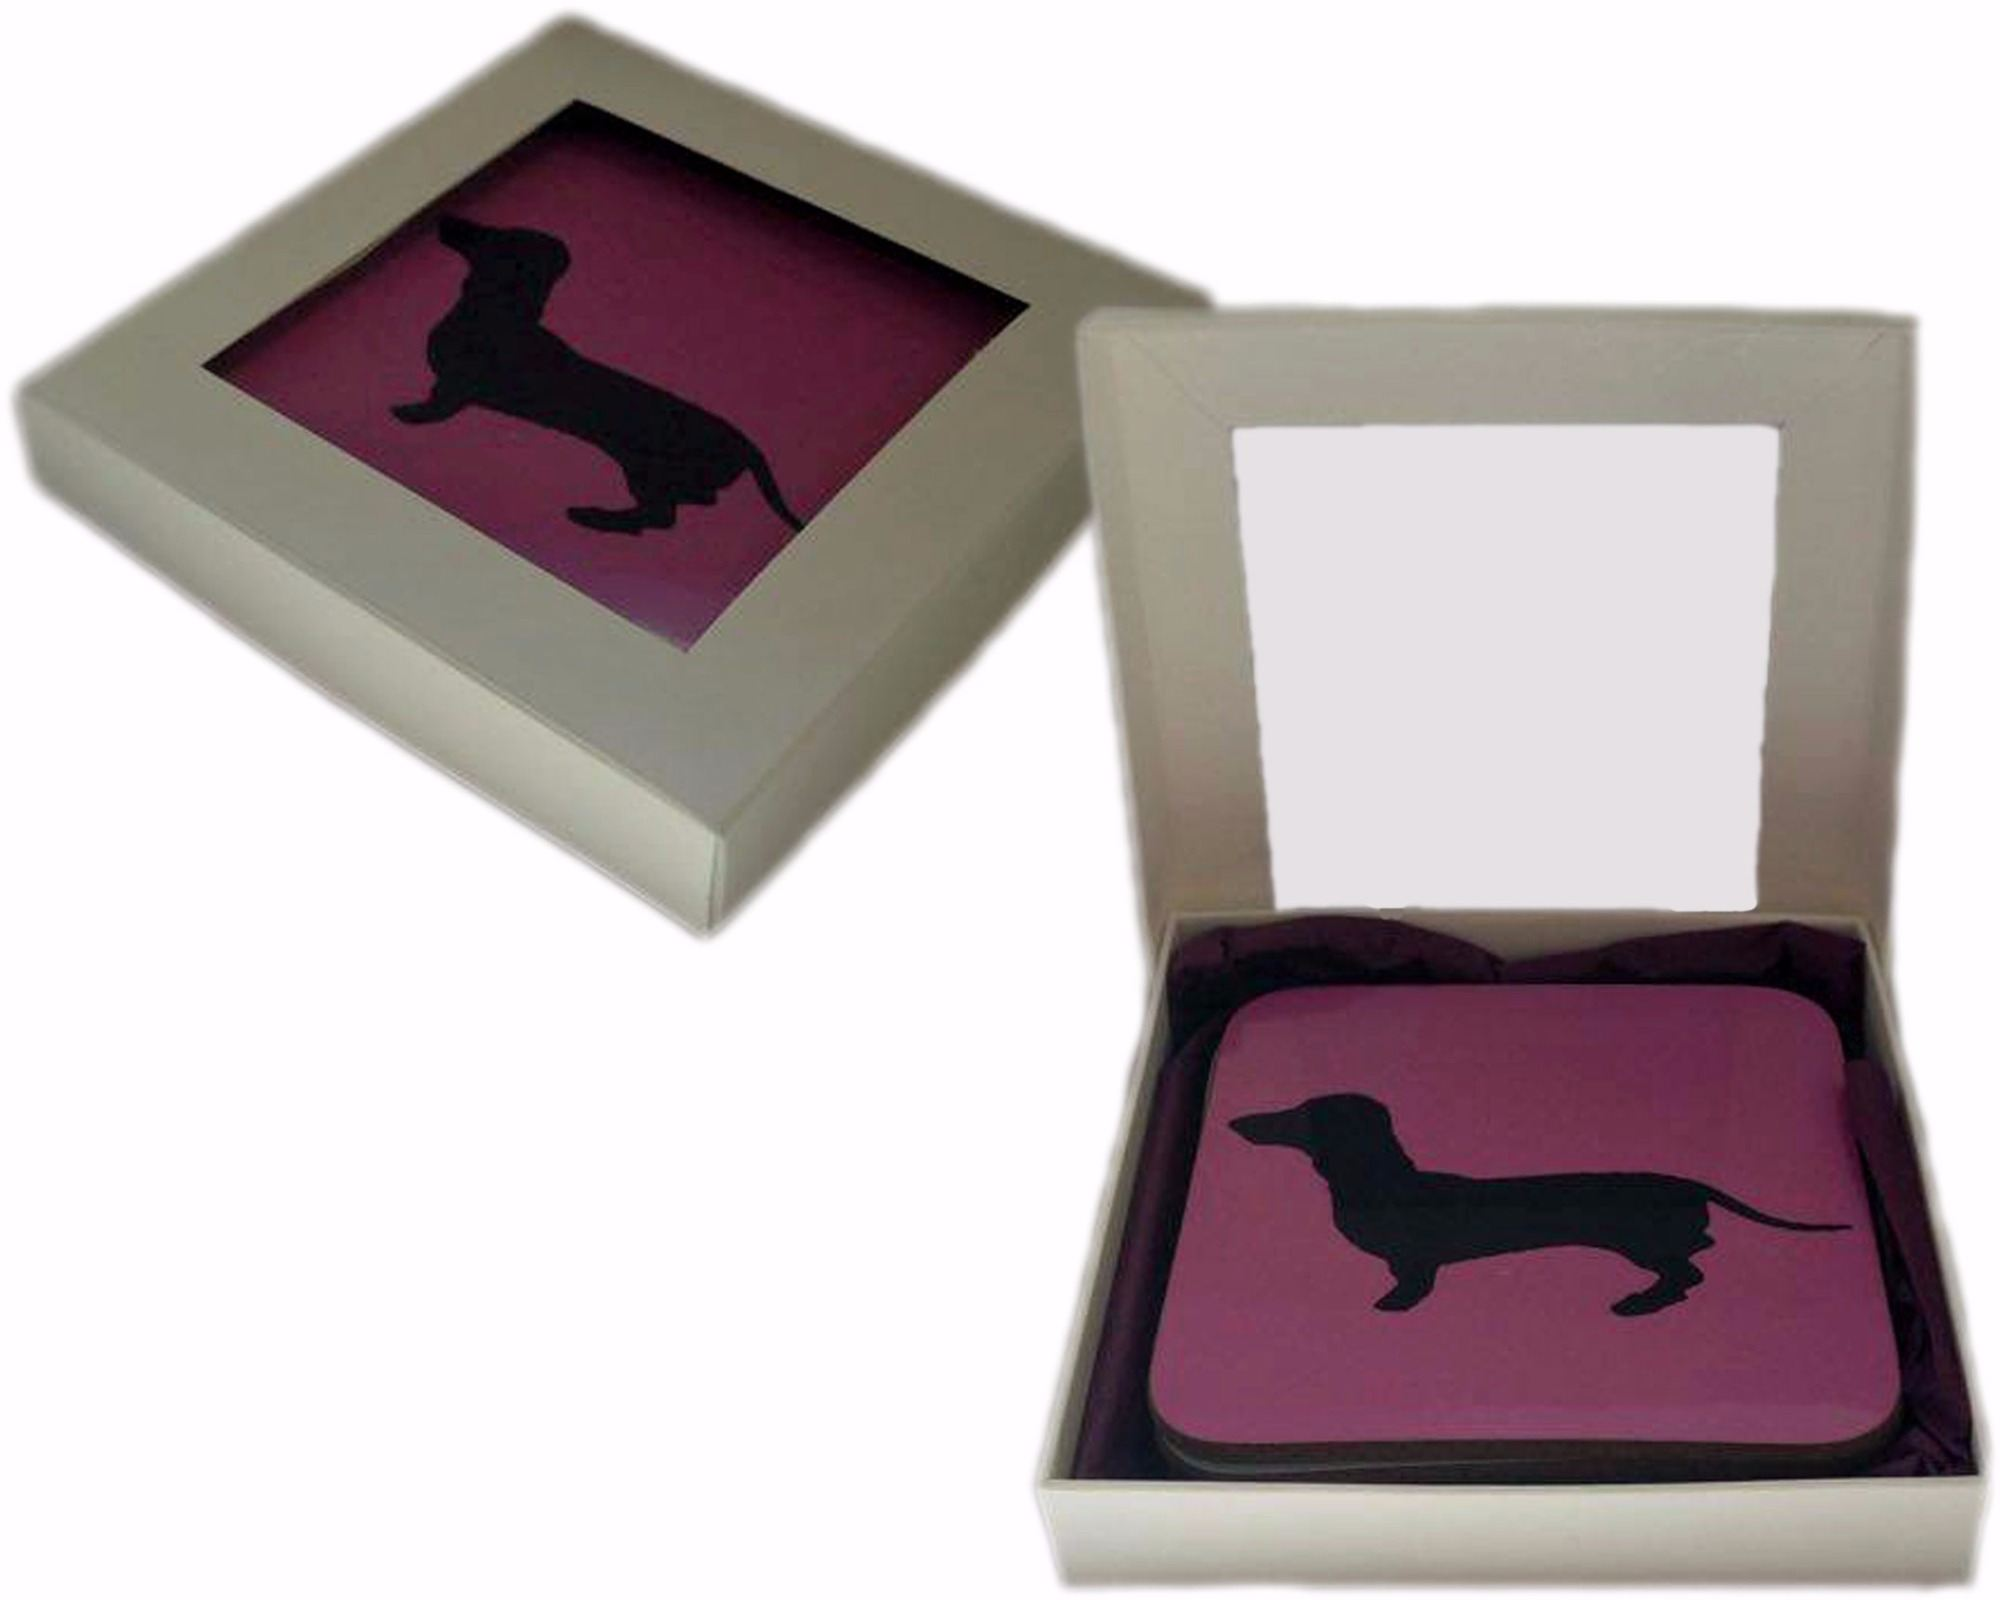 Jack Russell Terrier Dog Silhouette Jr Square Gloss Coaster